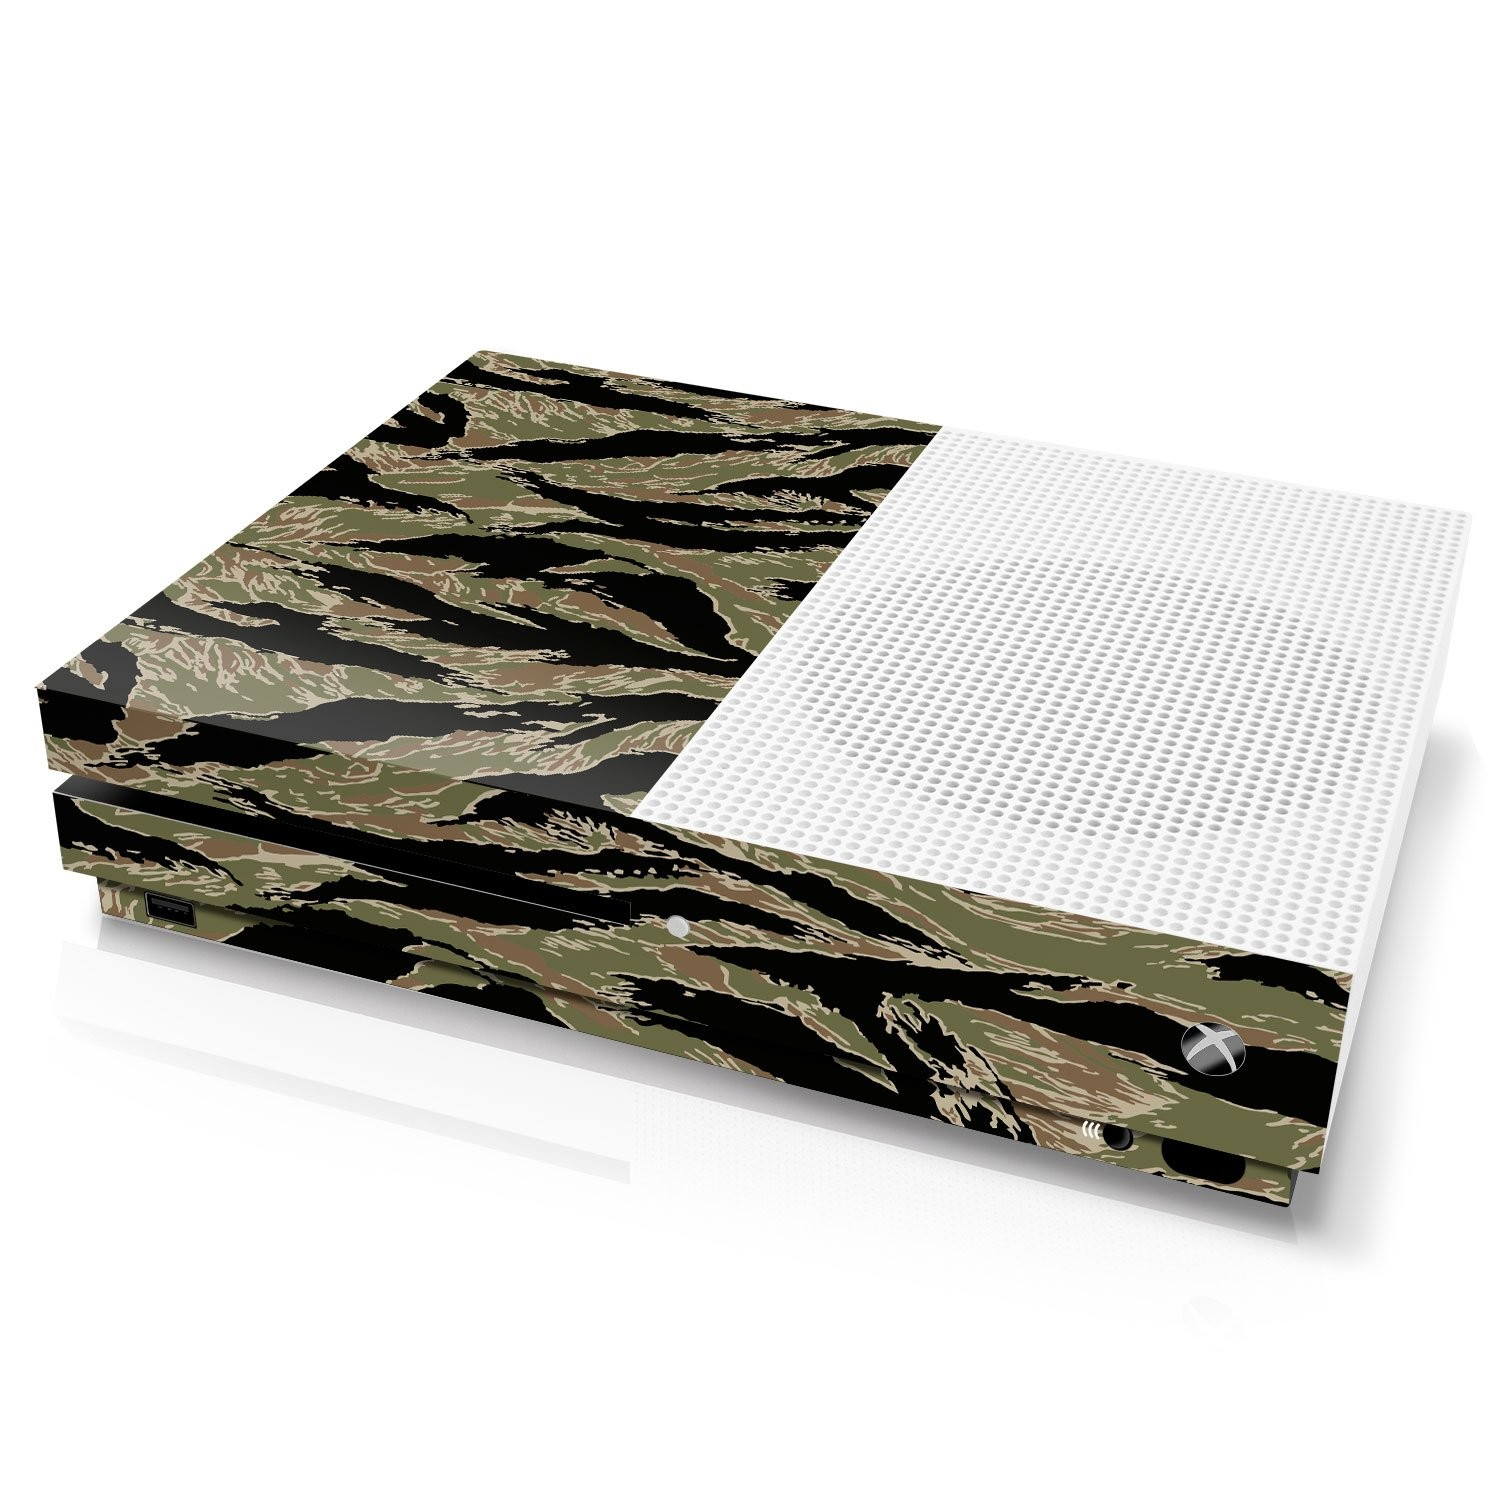 Xbox One S Console Skin - Camouflage: Tiger Stripe - Officially Licensed by Xbox